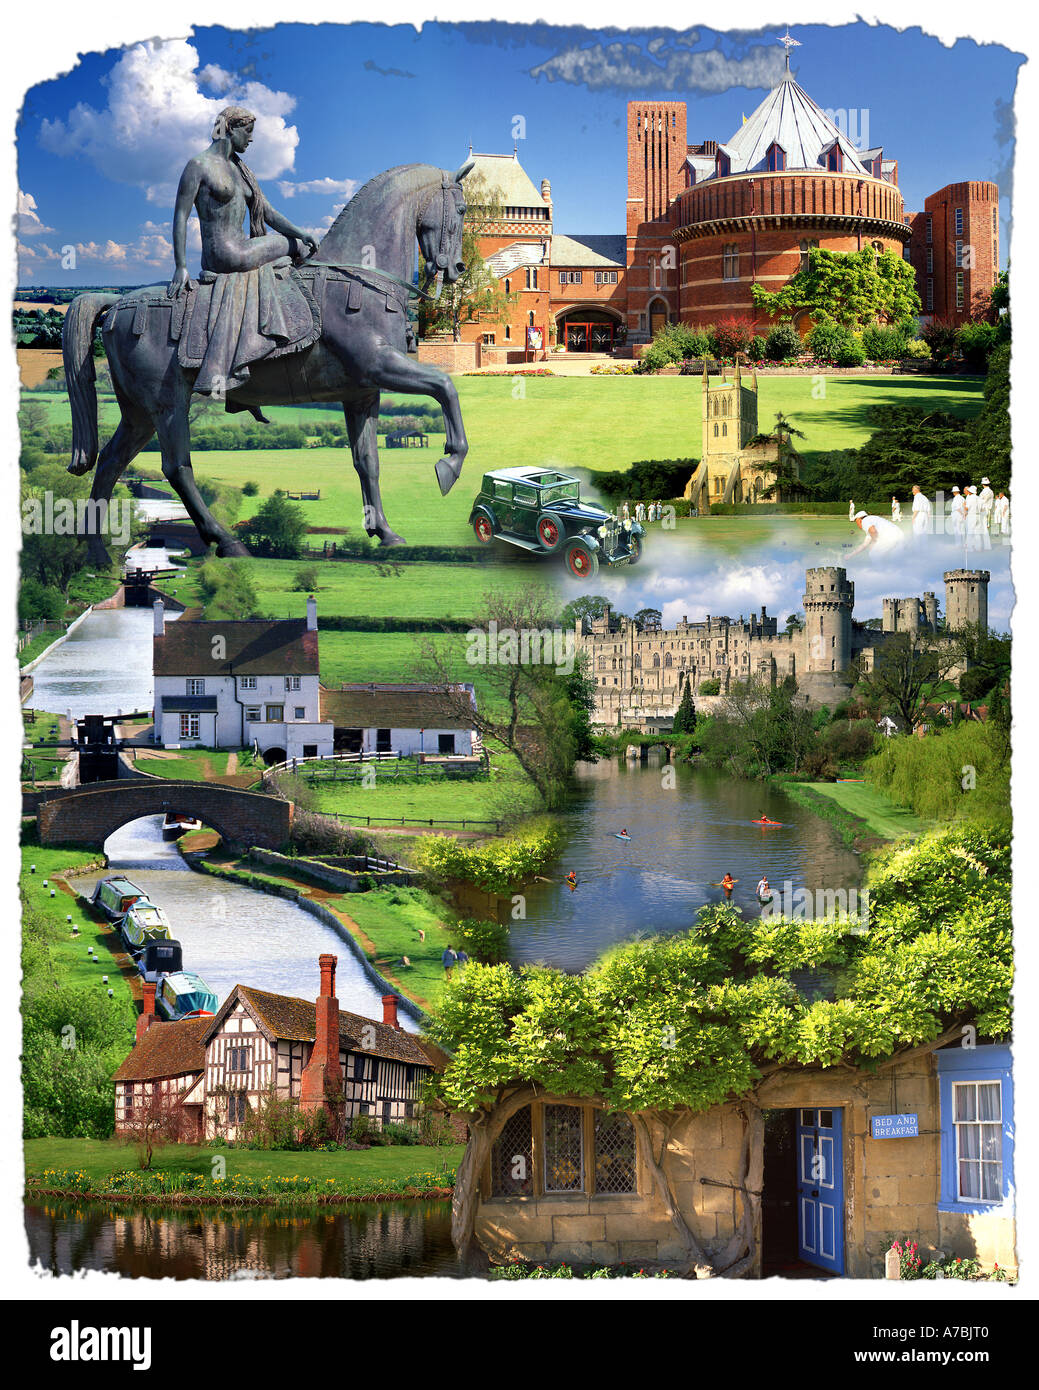 GB - HEART OF ENGLAND: Shakespeare Country Concept - Stock Image